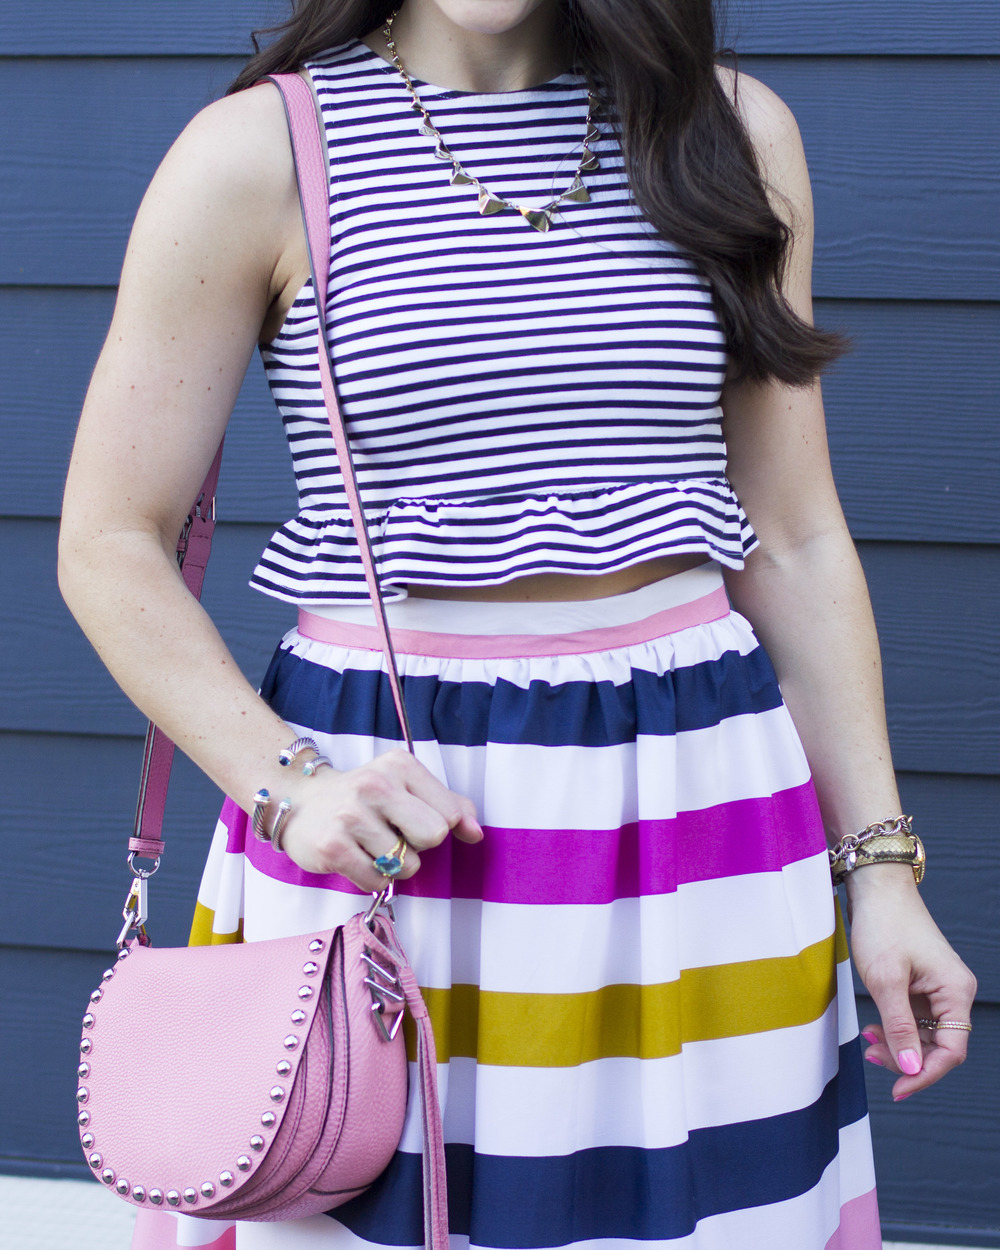 Print Mixing Stripes, Stripes on Stripes Outfit, Rainbow Striped Skirt with Stripe Crop Top, Sam Edelman Yardley Sandals, Rebecca Minkoff Unlined Saddle Bag, Cute Summer Outfits